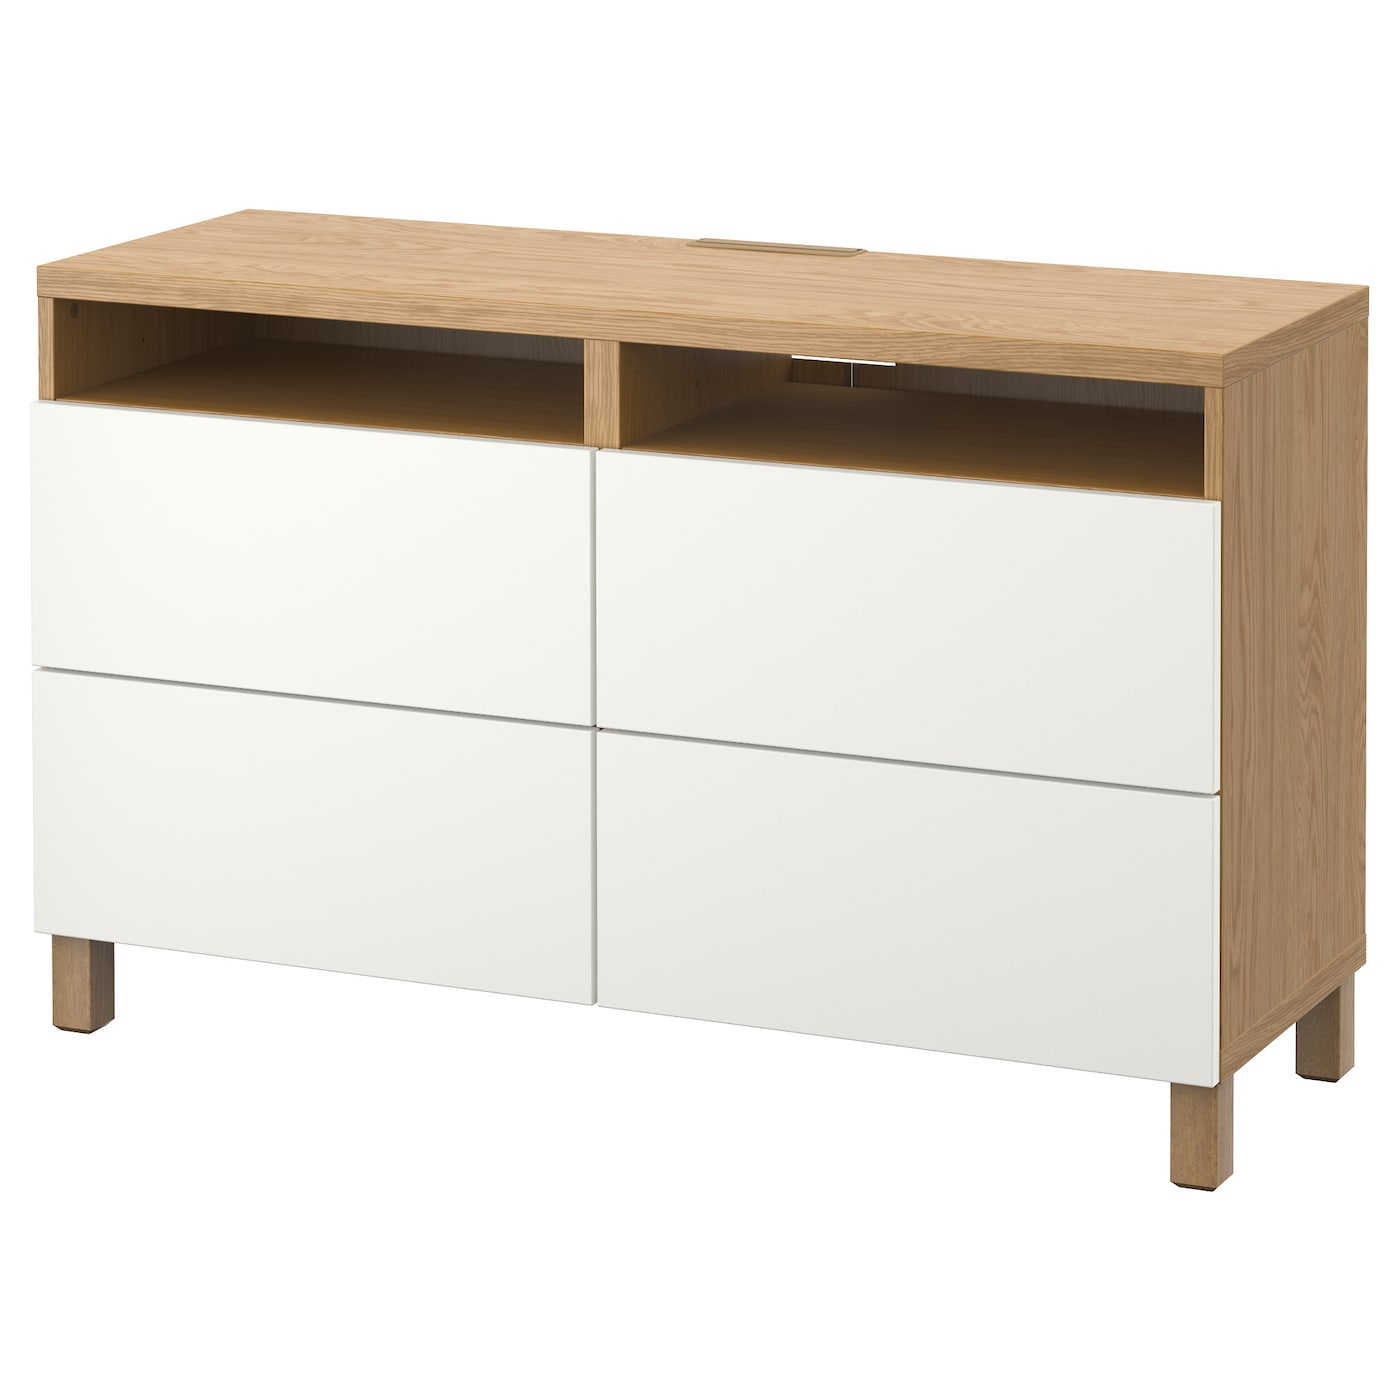 Best Tv Bench With Drawers Oak Effect Lappviken White 120x40x74 Cm Ikea